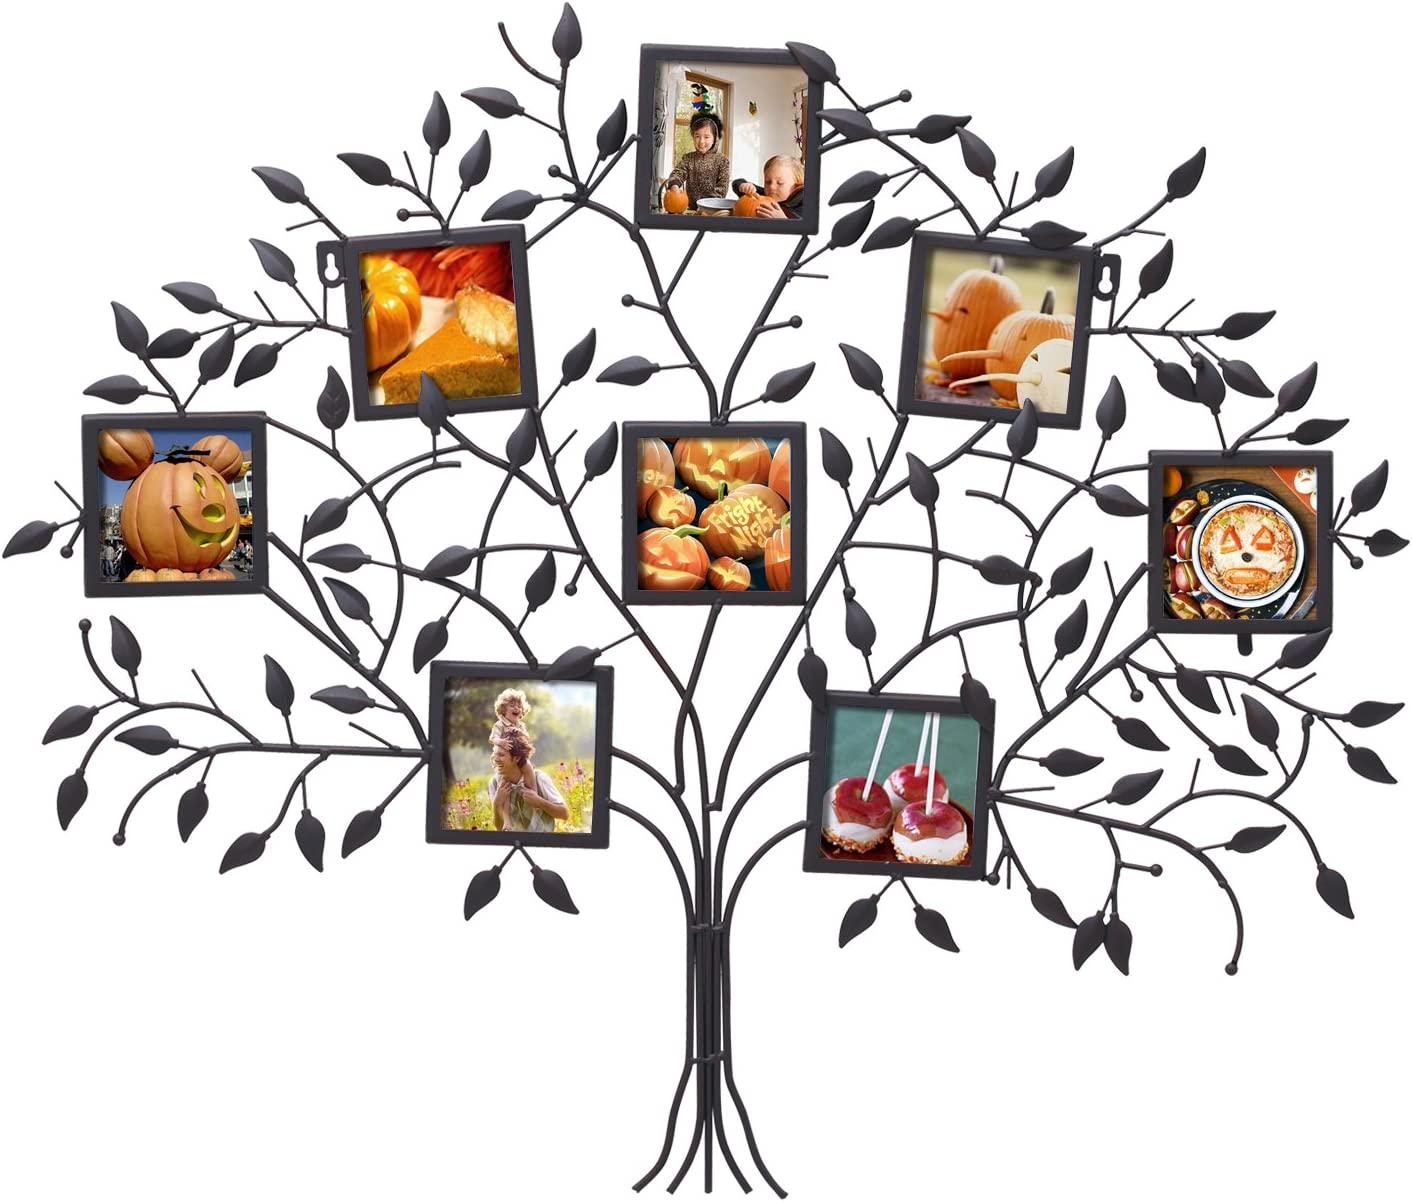 Asense Family Tree Photo Frame Black Metal Wall Hanging Decorative Collage Picture Frame, 8 Openings